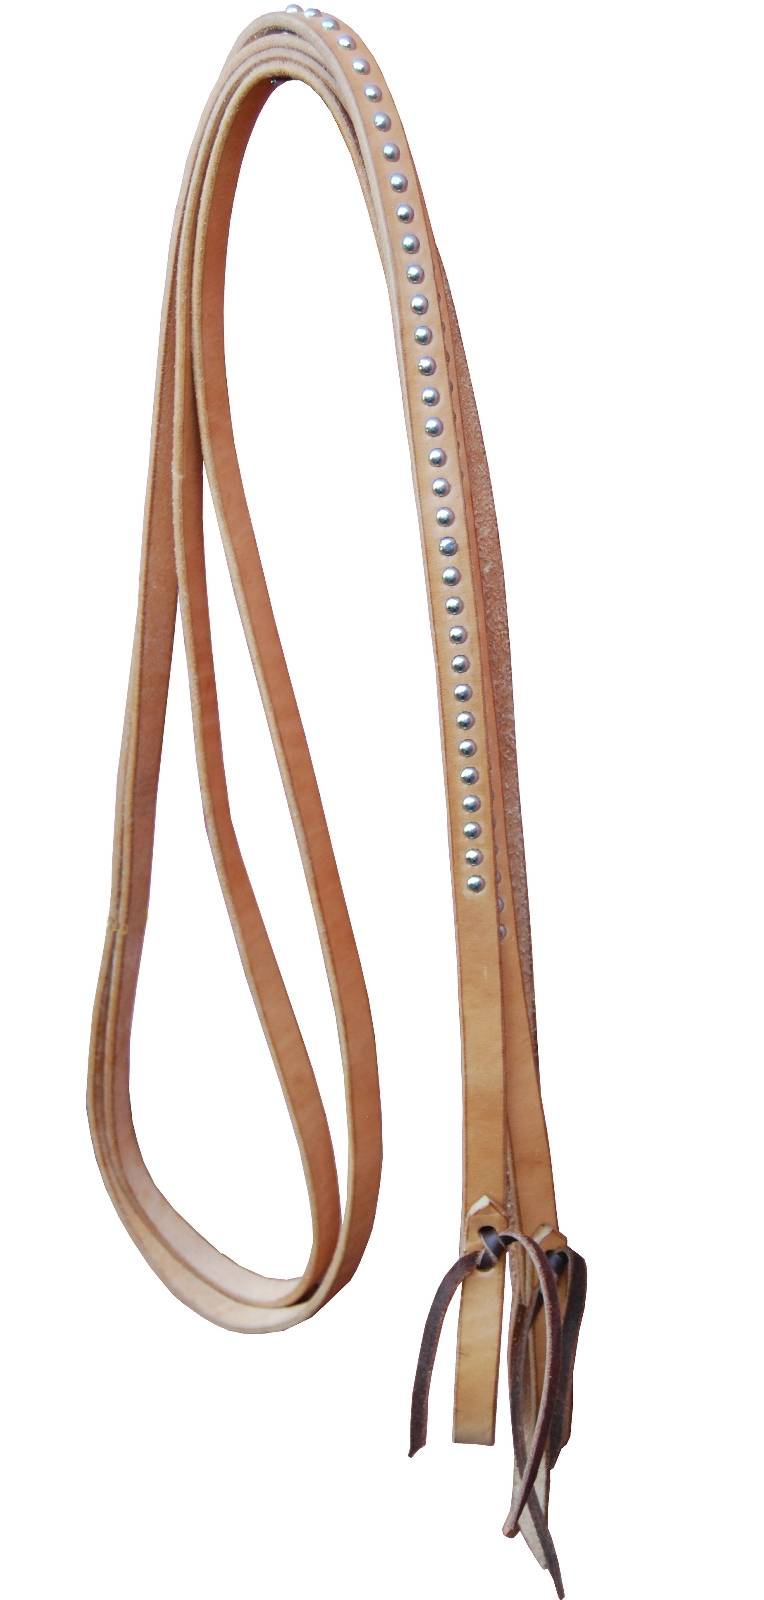 Turn-Two Equine Copper Spot Split Reins